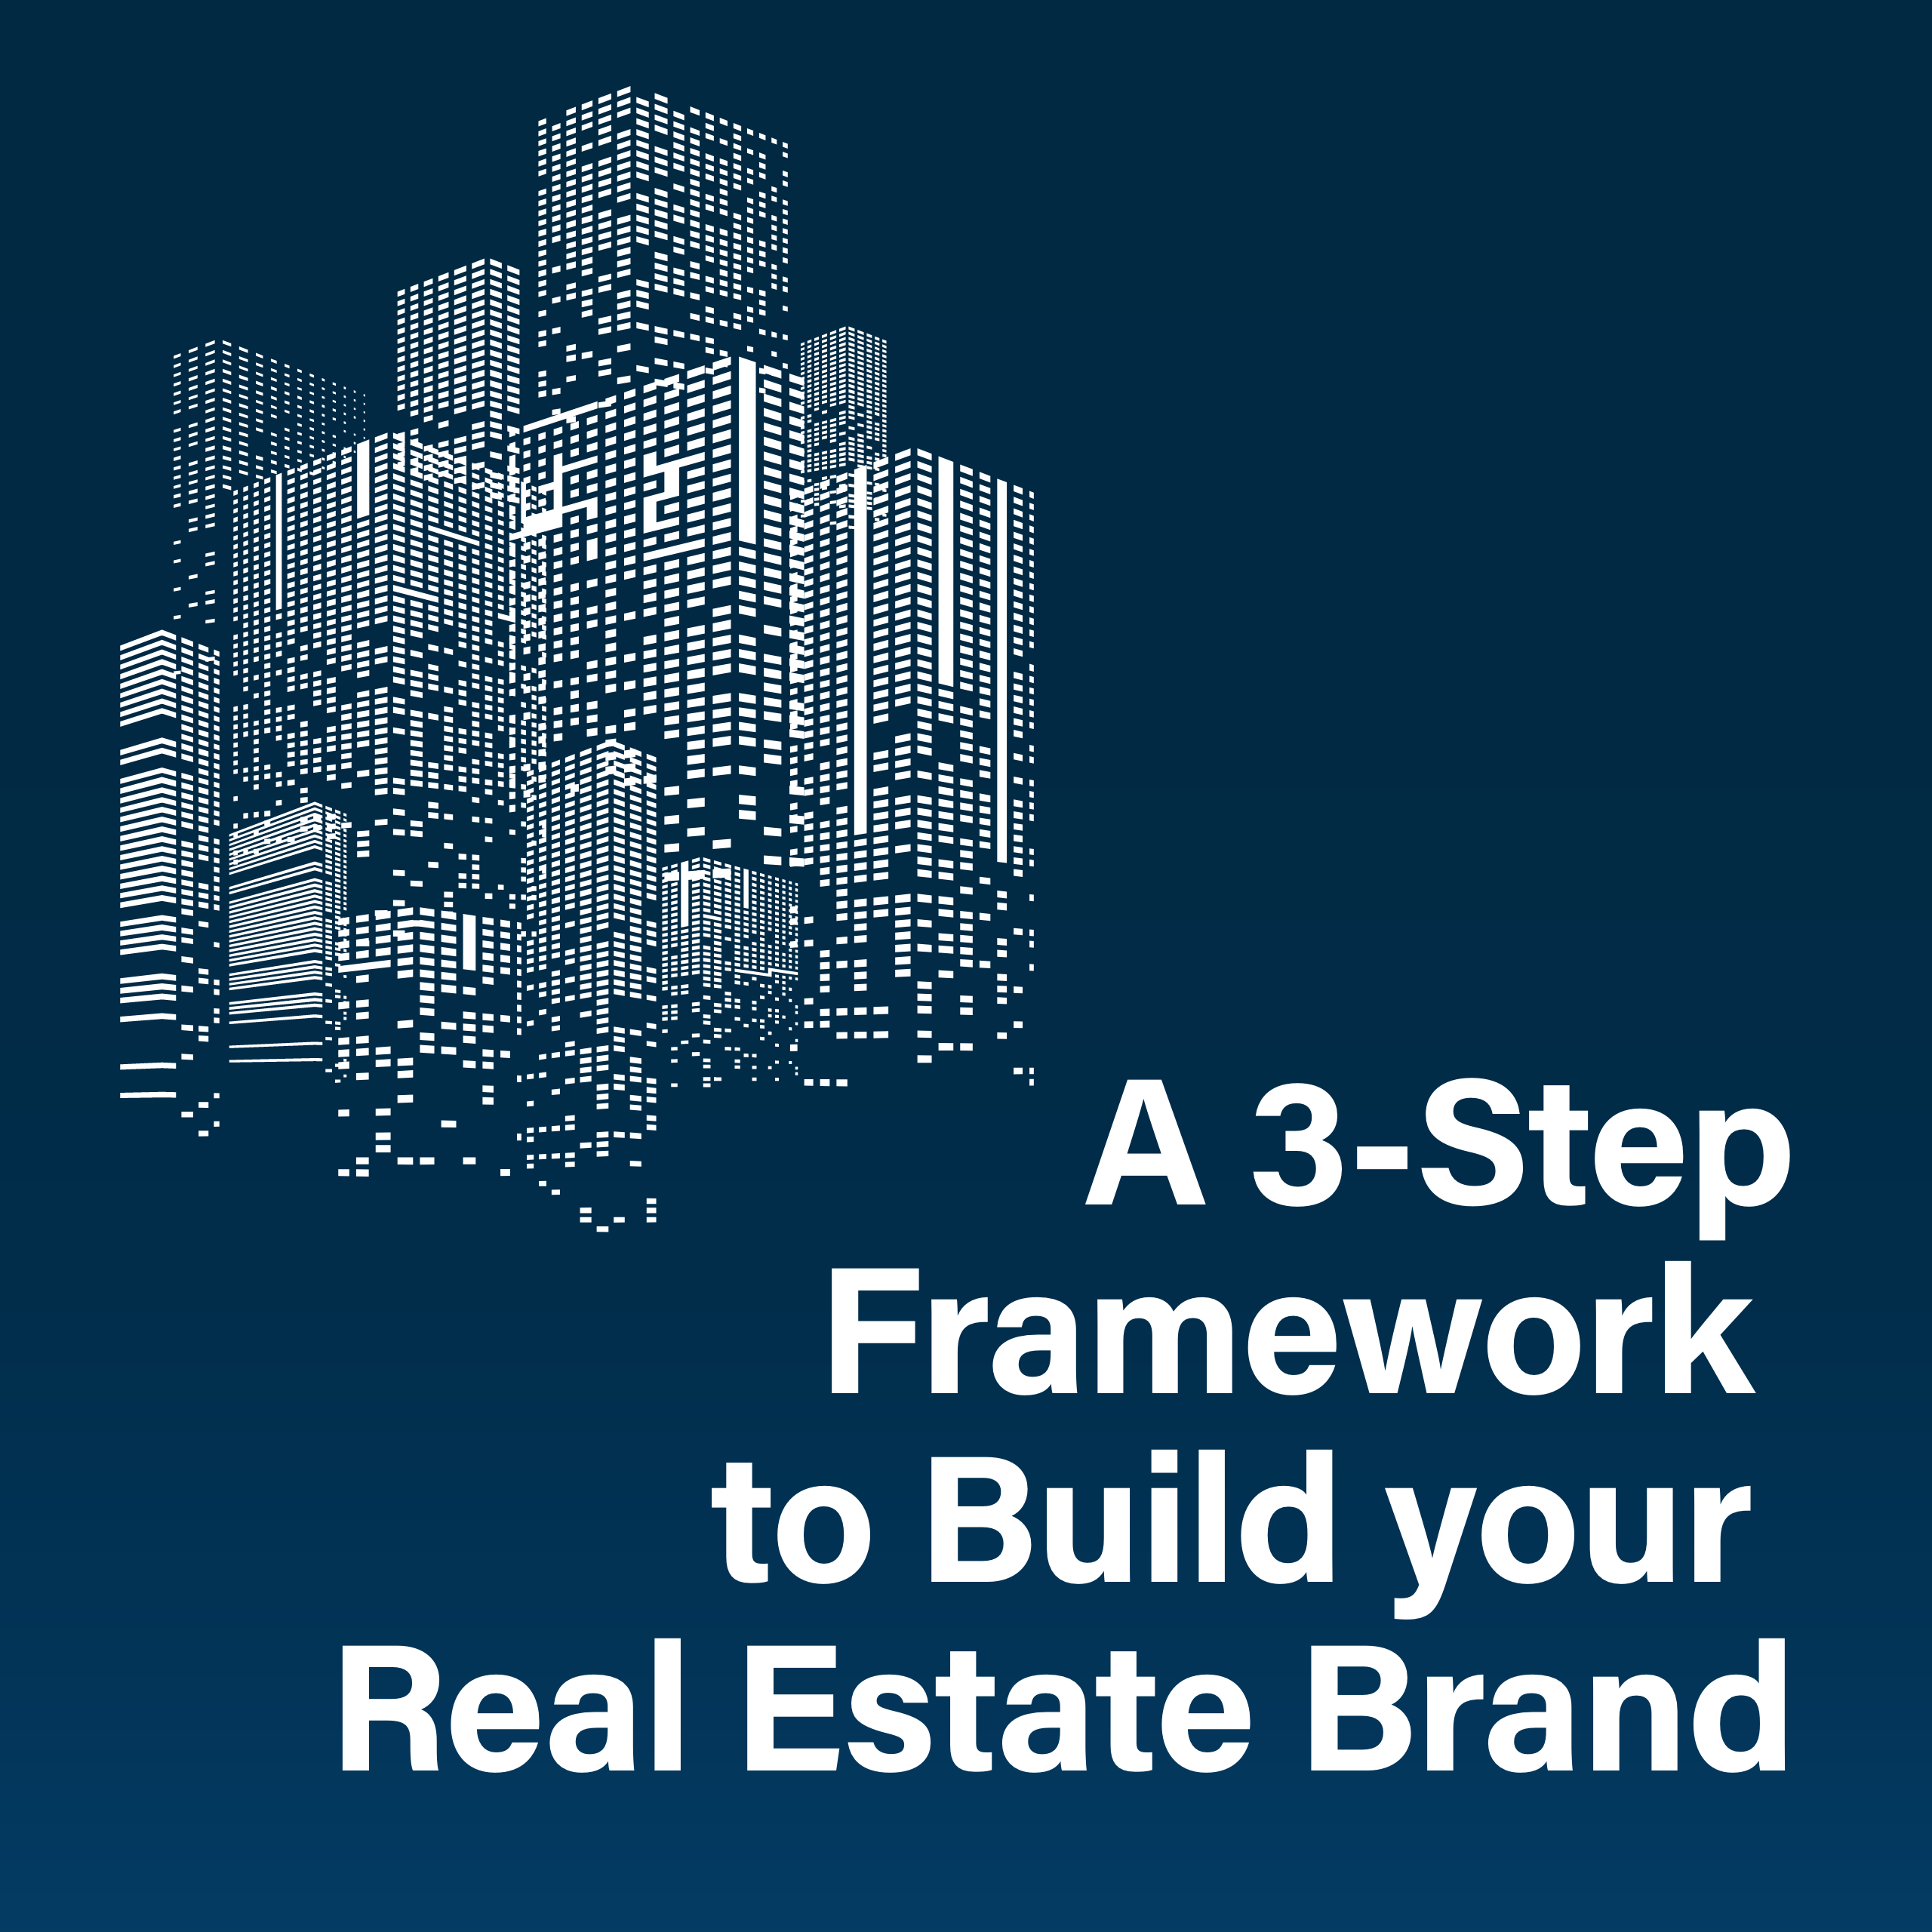 A 3-Step Framework to Build your Real Estate Brand